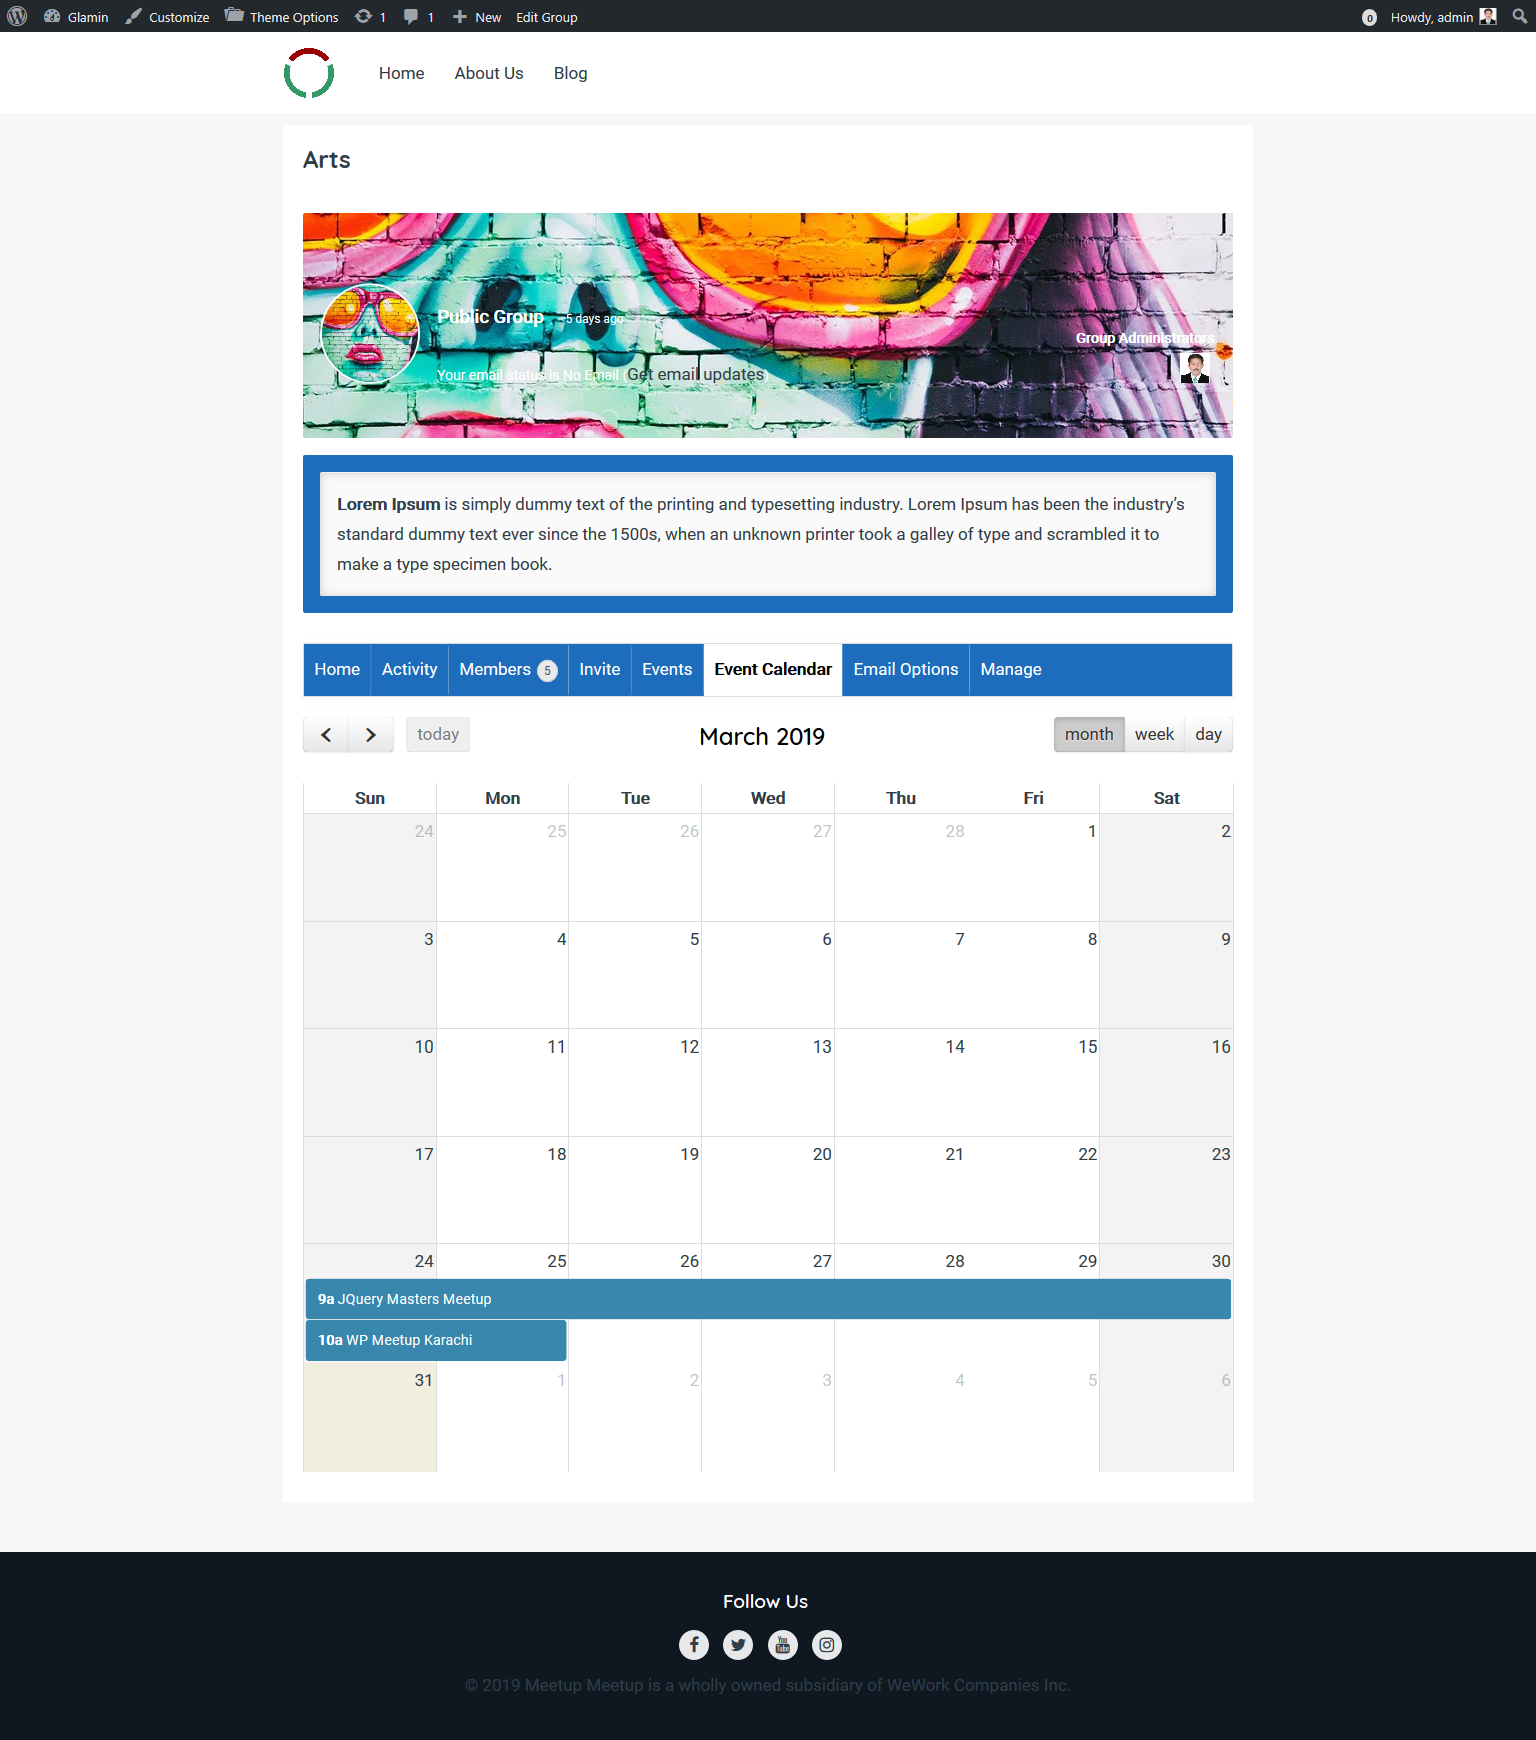 This is event calendar by group